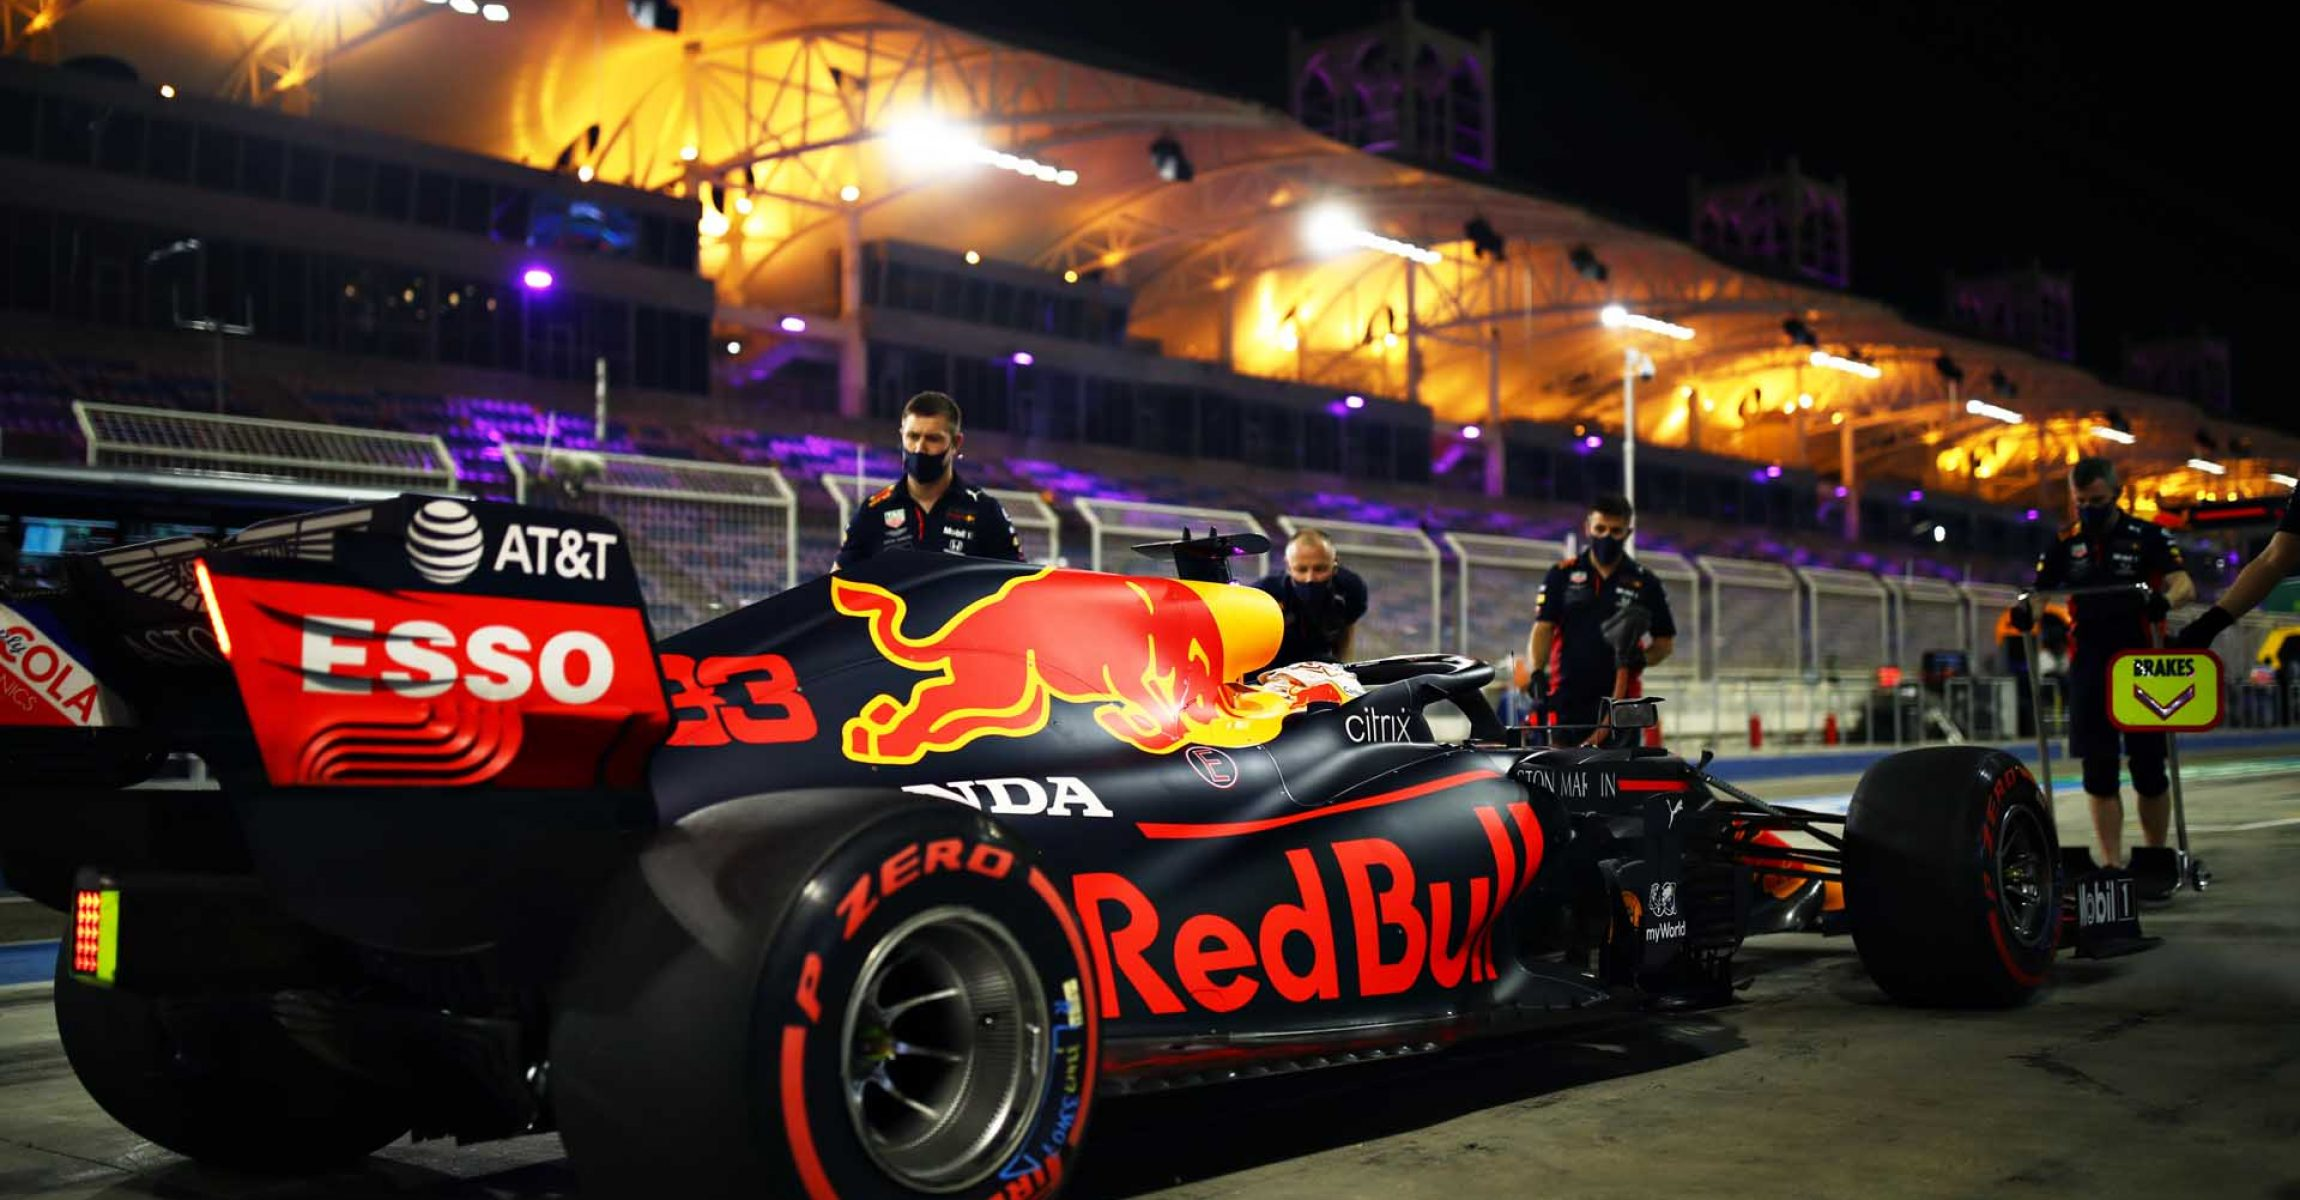 BAHRAIN, BAHRAIN - DECEMBER 05: Max Verstappen of the Netherlands driving the (33) Aston Martin Red Bull Racing RB16 stops in the Pitlane during qualifying ahead of the F1 Grand Prix of Sakhir at Bahrain International Circuit on December 05, 2020 in Bahrain, Bahrain. (Photo by Mark Thompson/Getty Images)